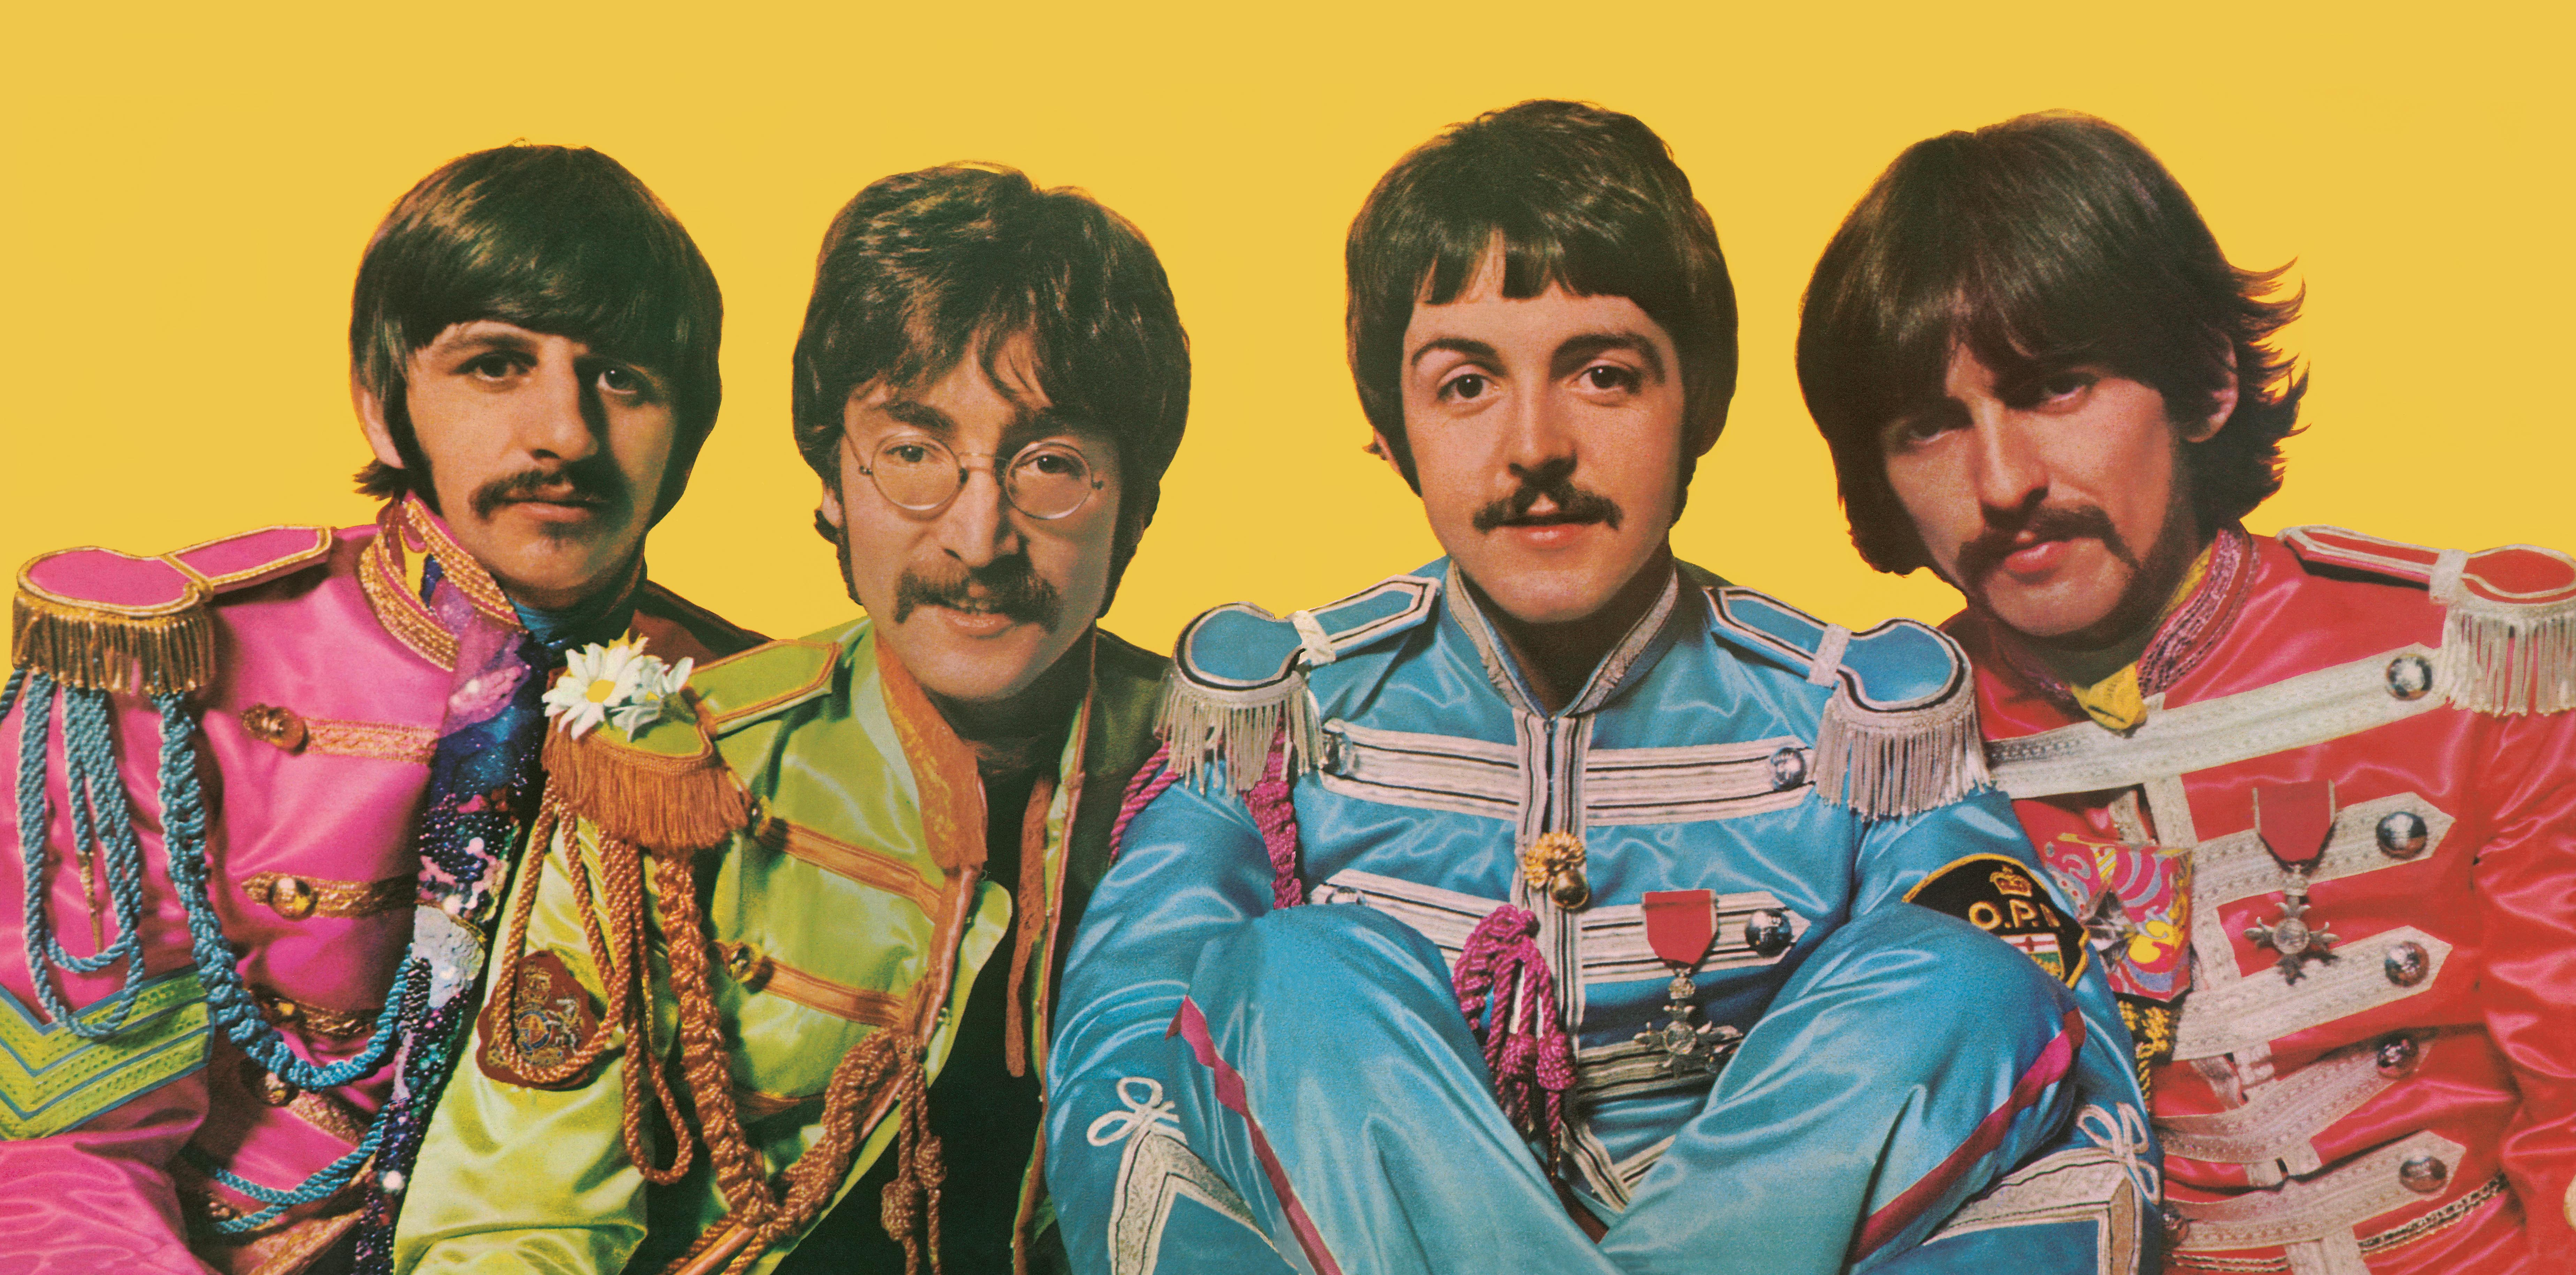 the beatles zelebrieren sgt pepper 39 s lonely hearts club band mit besonderen jubil ums. Black Bedroom Furniture Sets. Home Design Ideas